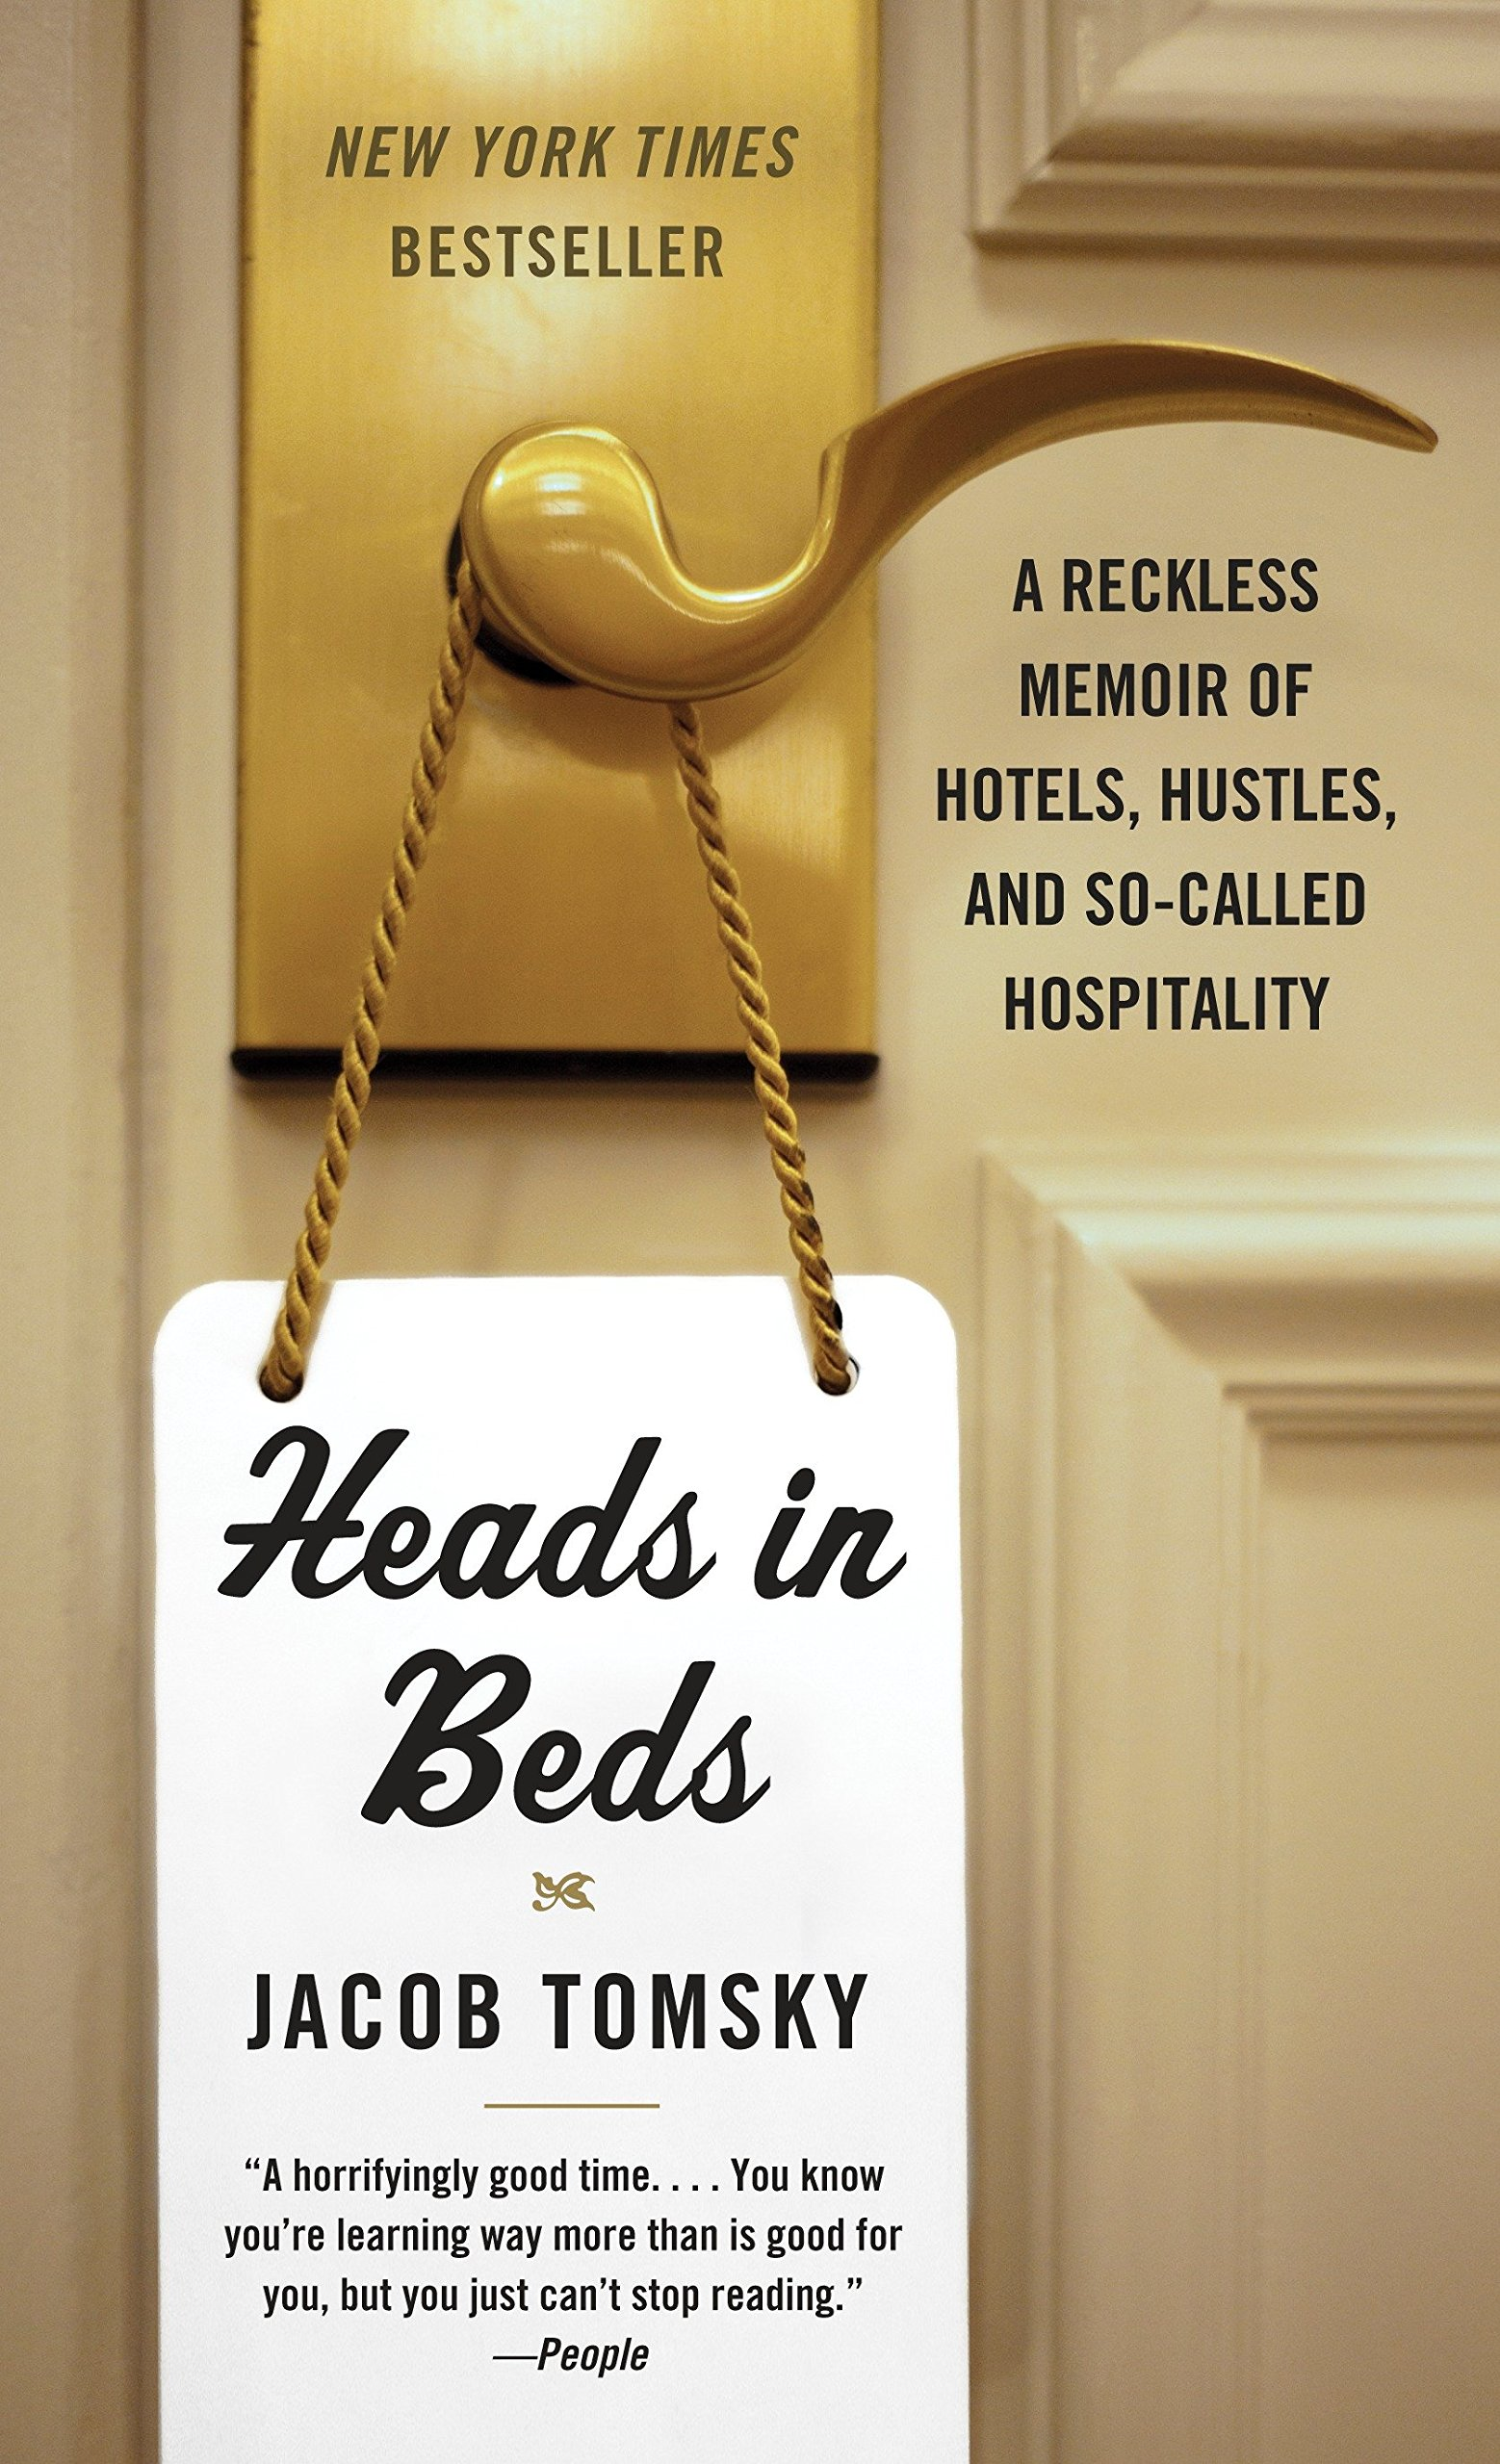 Heads in Beds: A Reckless Memoir of Hotels, Hustles, and So-Called  Hospitality: Jacob Tomsky: 9781101973745: Amazon.com: Books